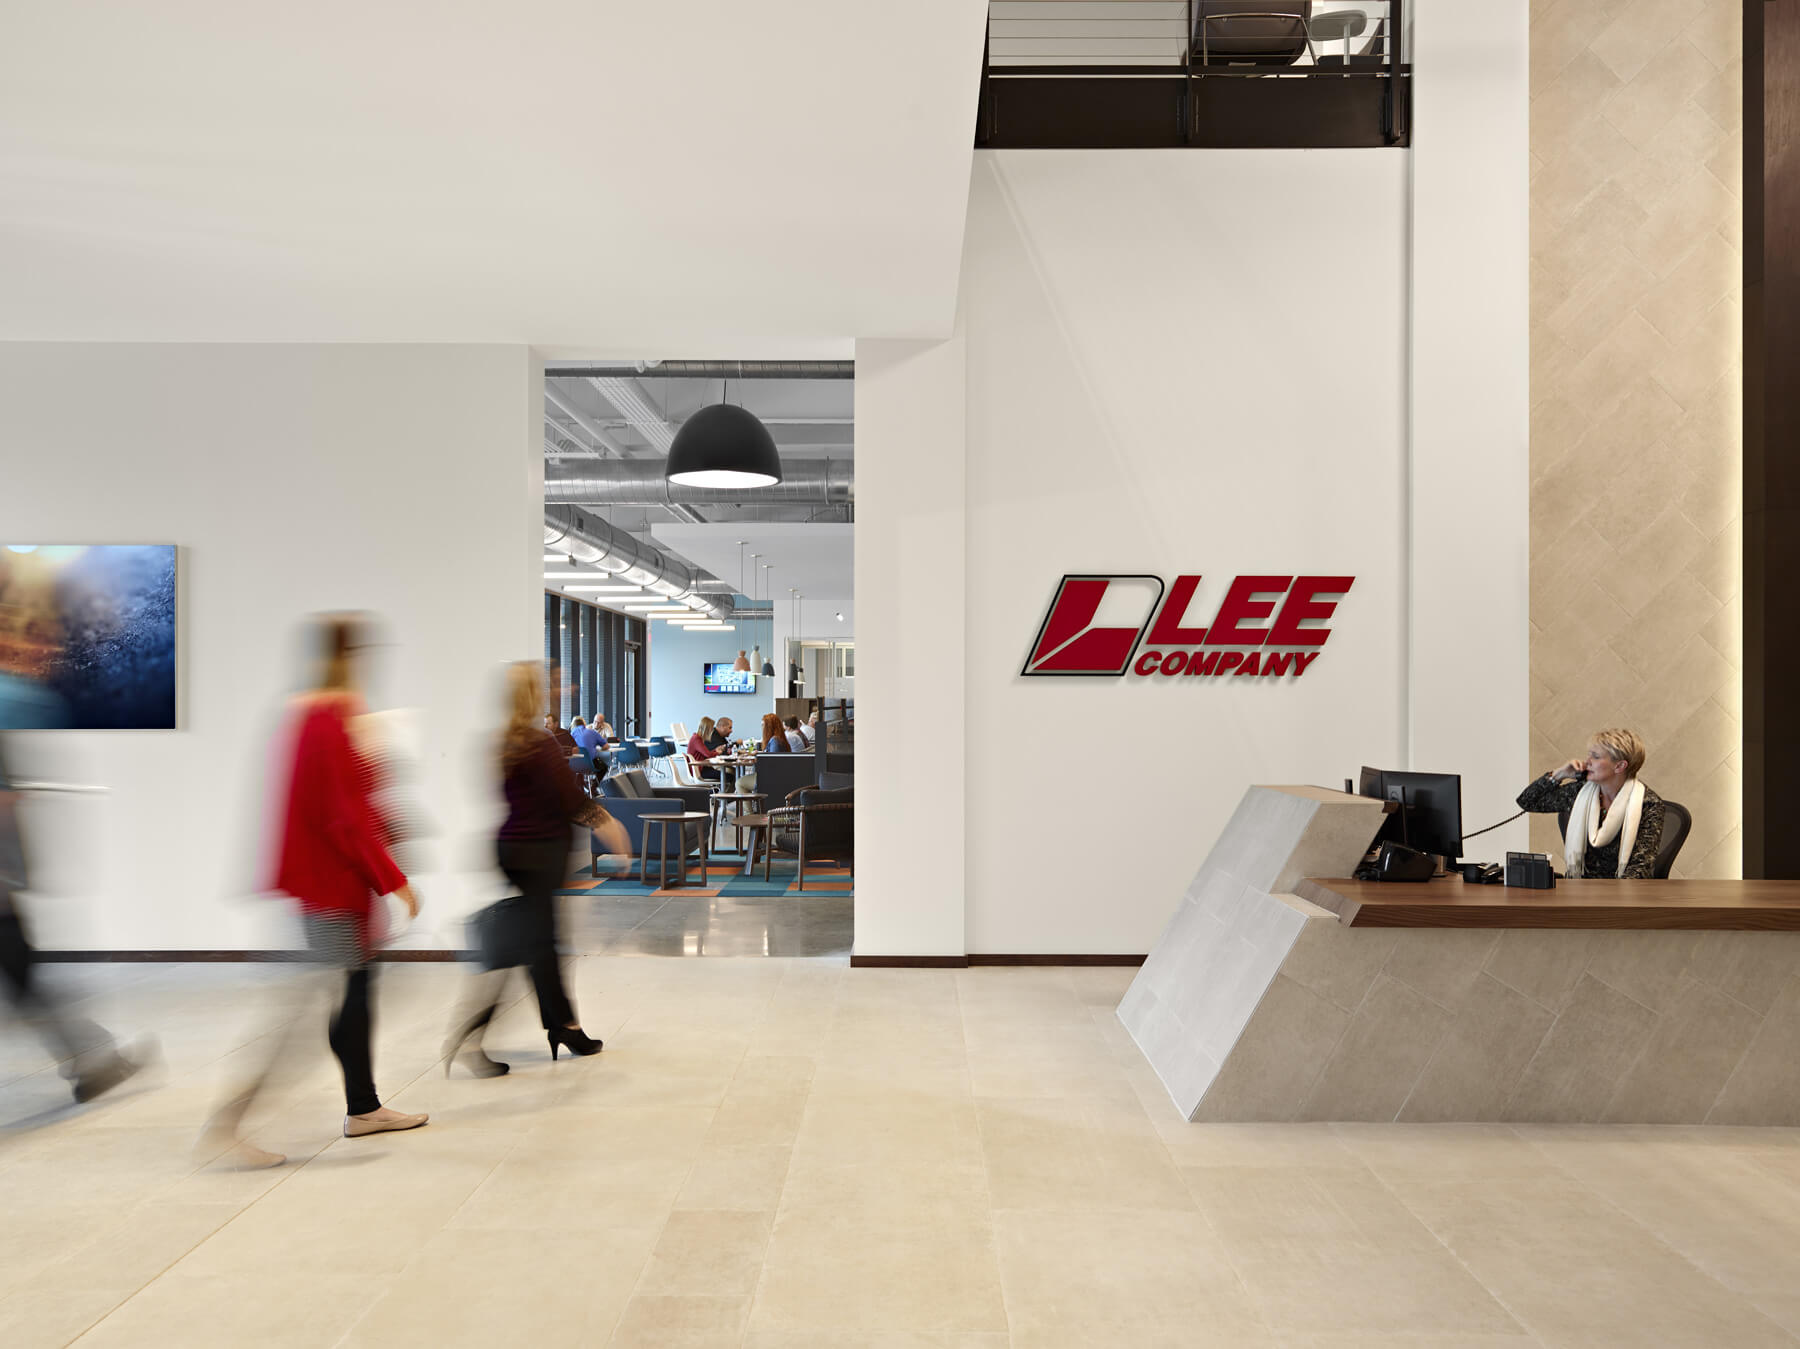 Lee-Company-HQ-Shot-5-web.jpg